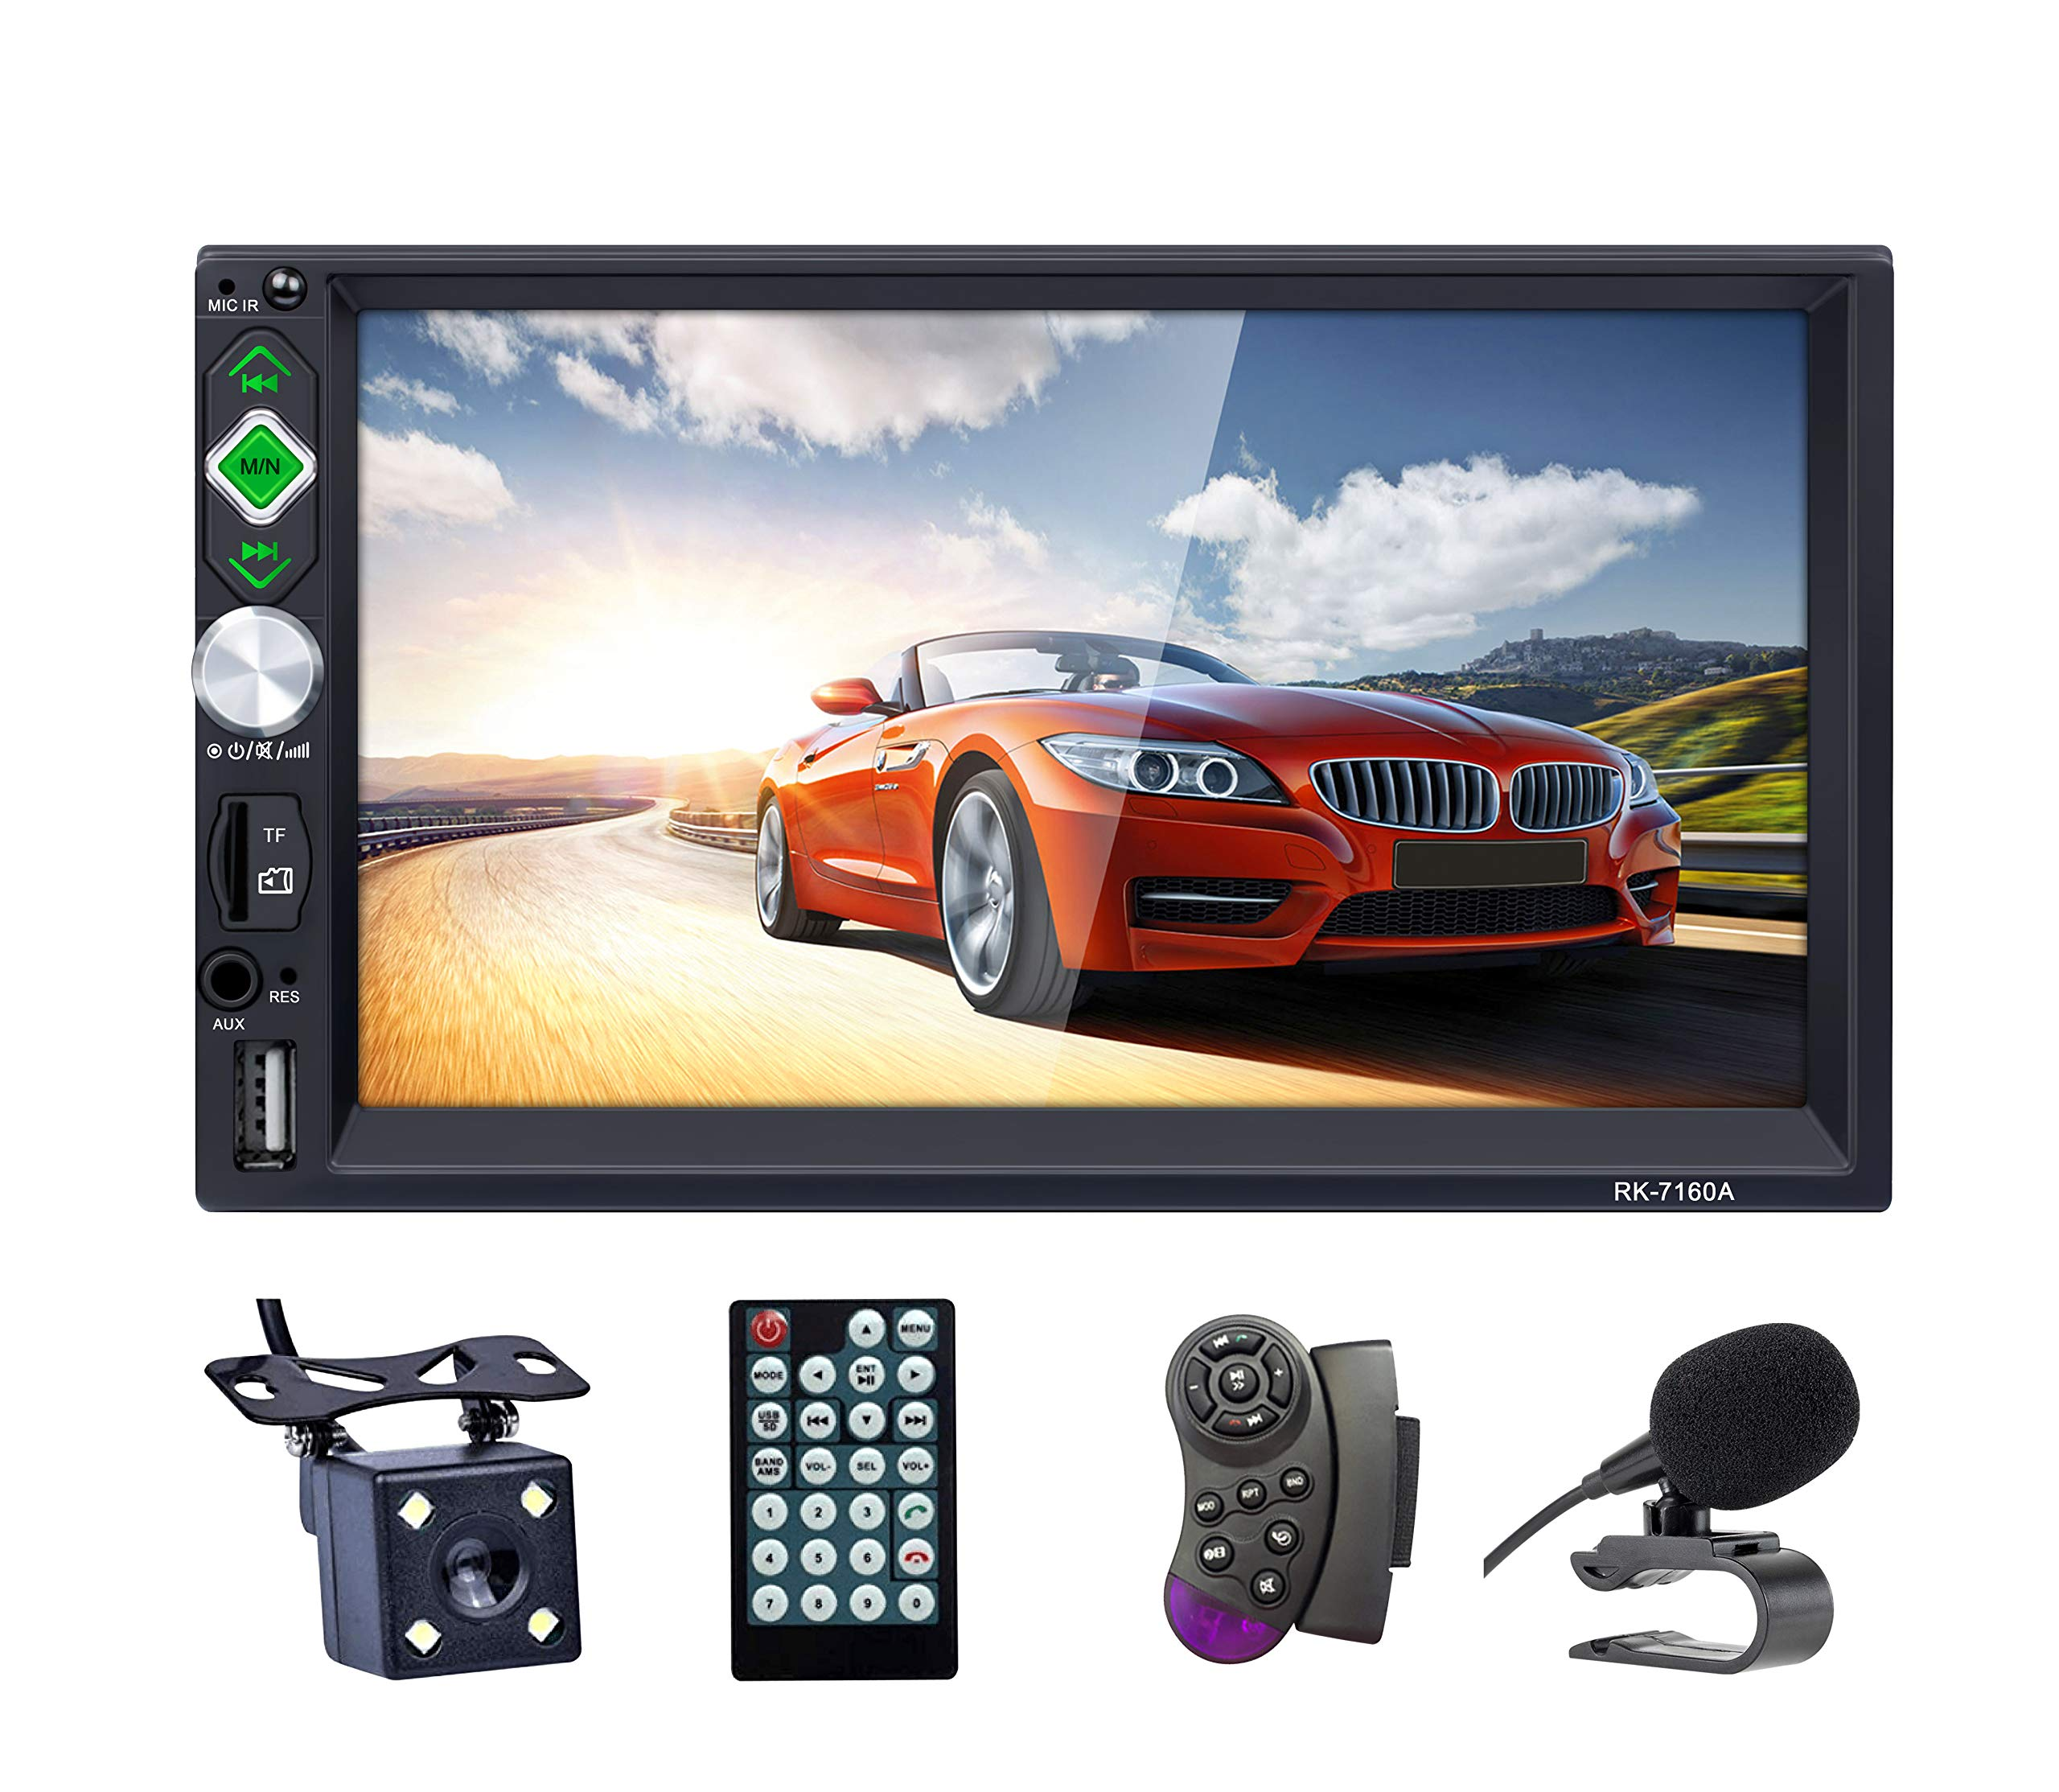 LSLYA Bluetooth Car Stereo 7 inch HD Touch Capacitive screen 2 Din in-Dash MP5 MP3 Player Audio Video Amplifier with Hands-Free/FM AM RDS Radio/USB/SD/AUX/ Steering Wheel Controls Remote Con